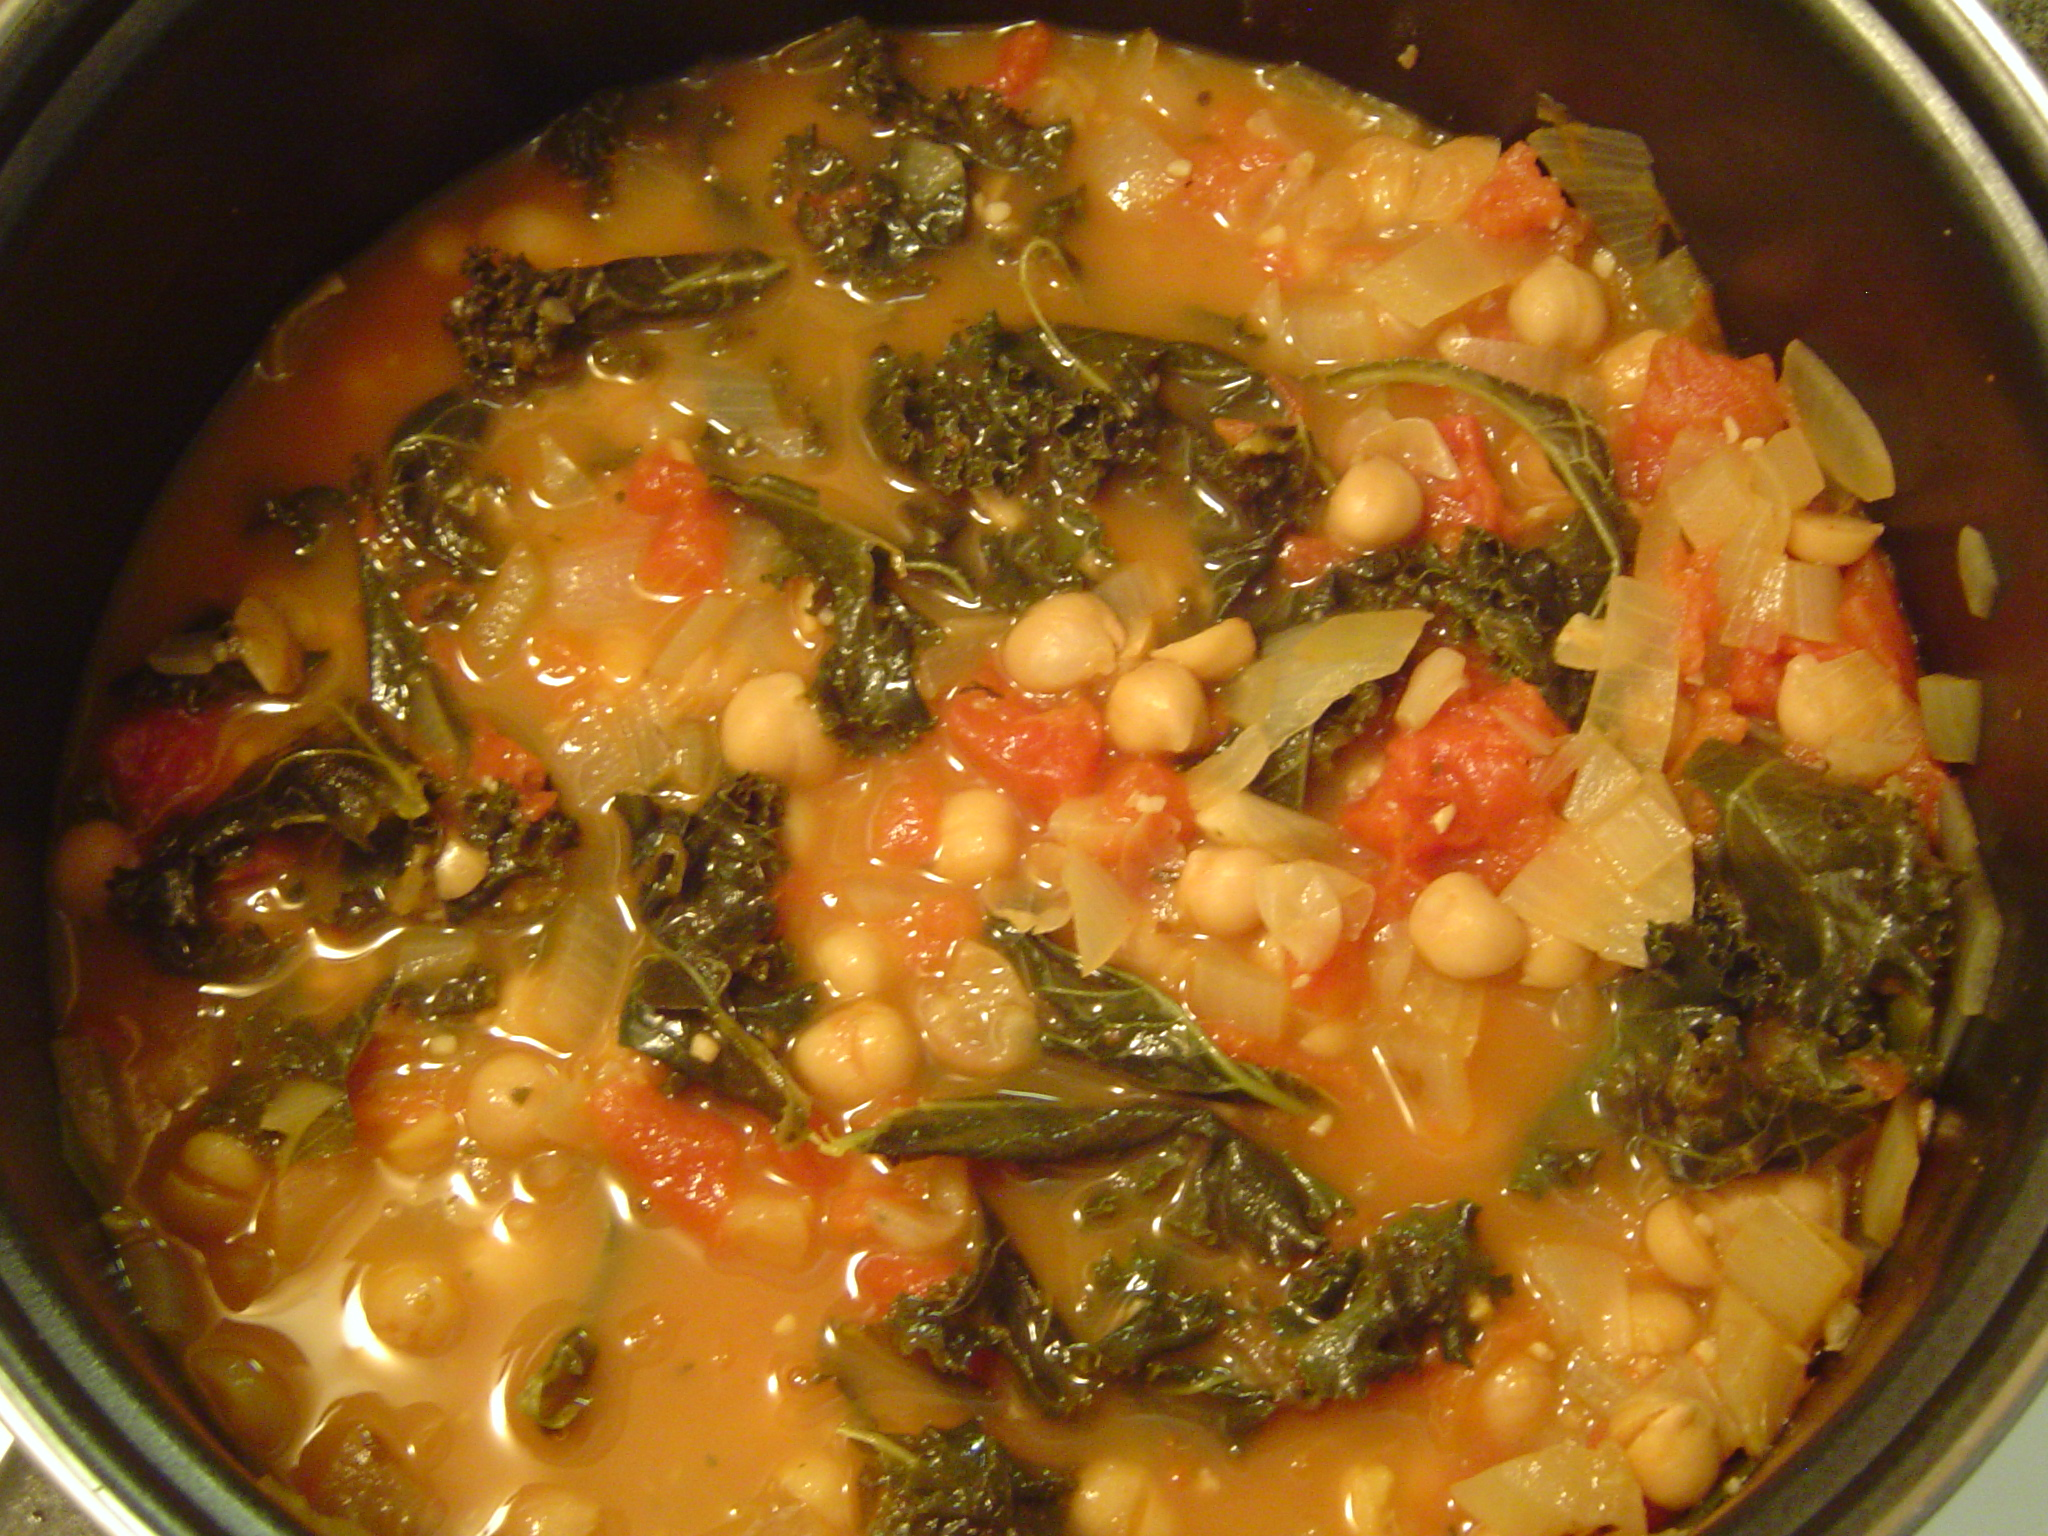 Kale and Chickpea Soup - Eat Better to Live Better